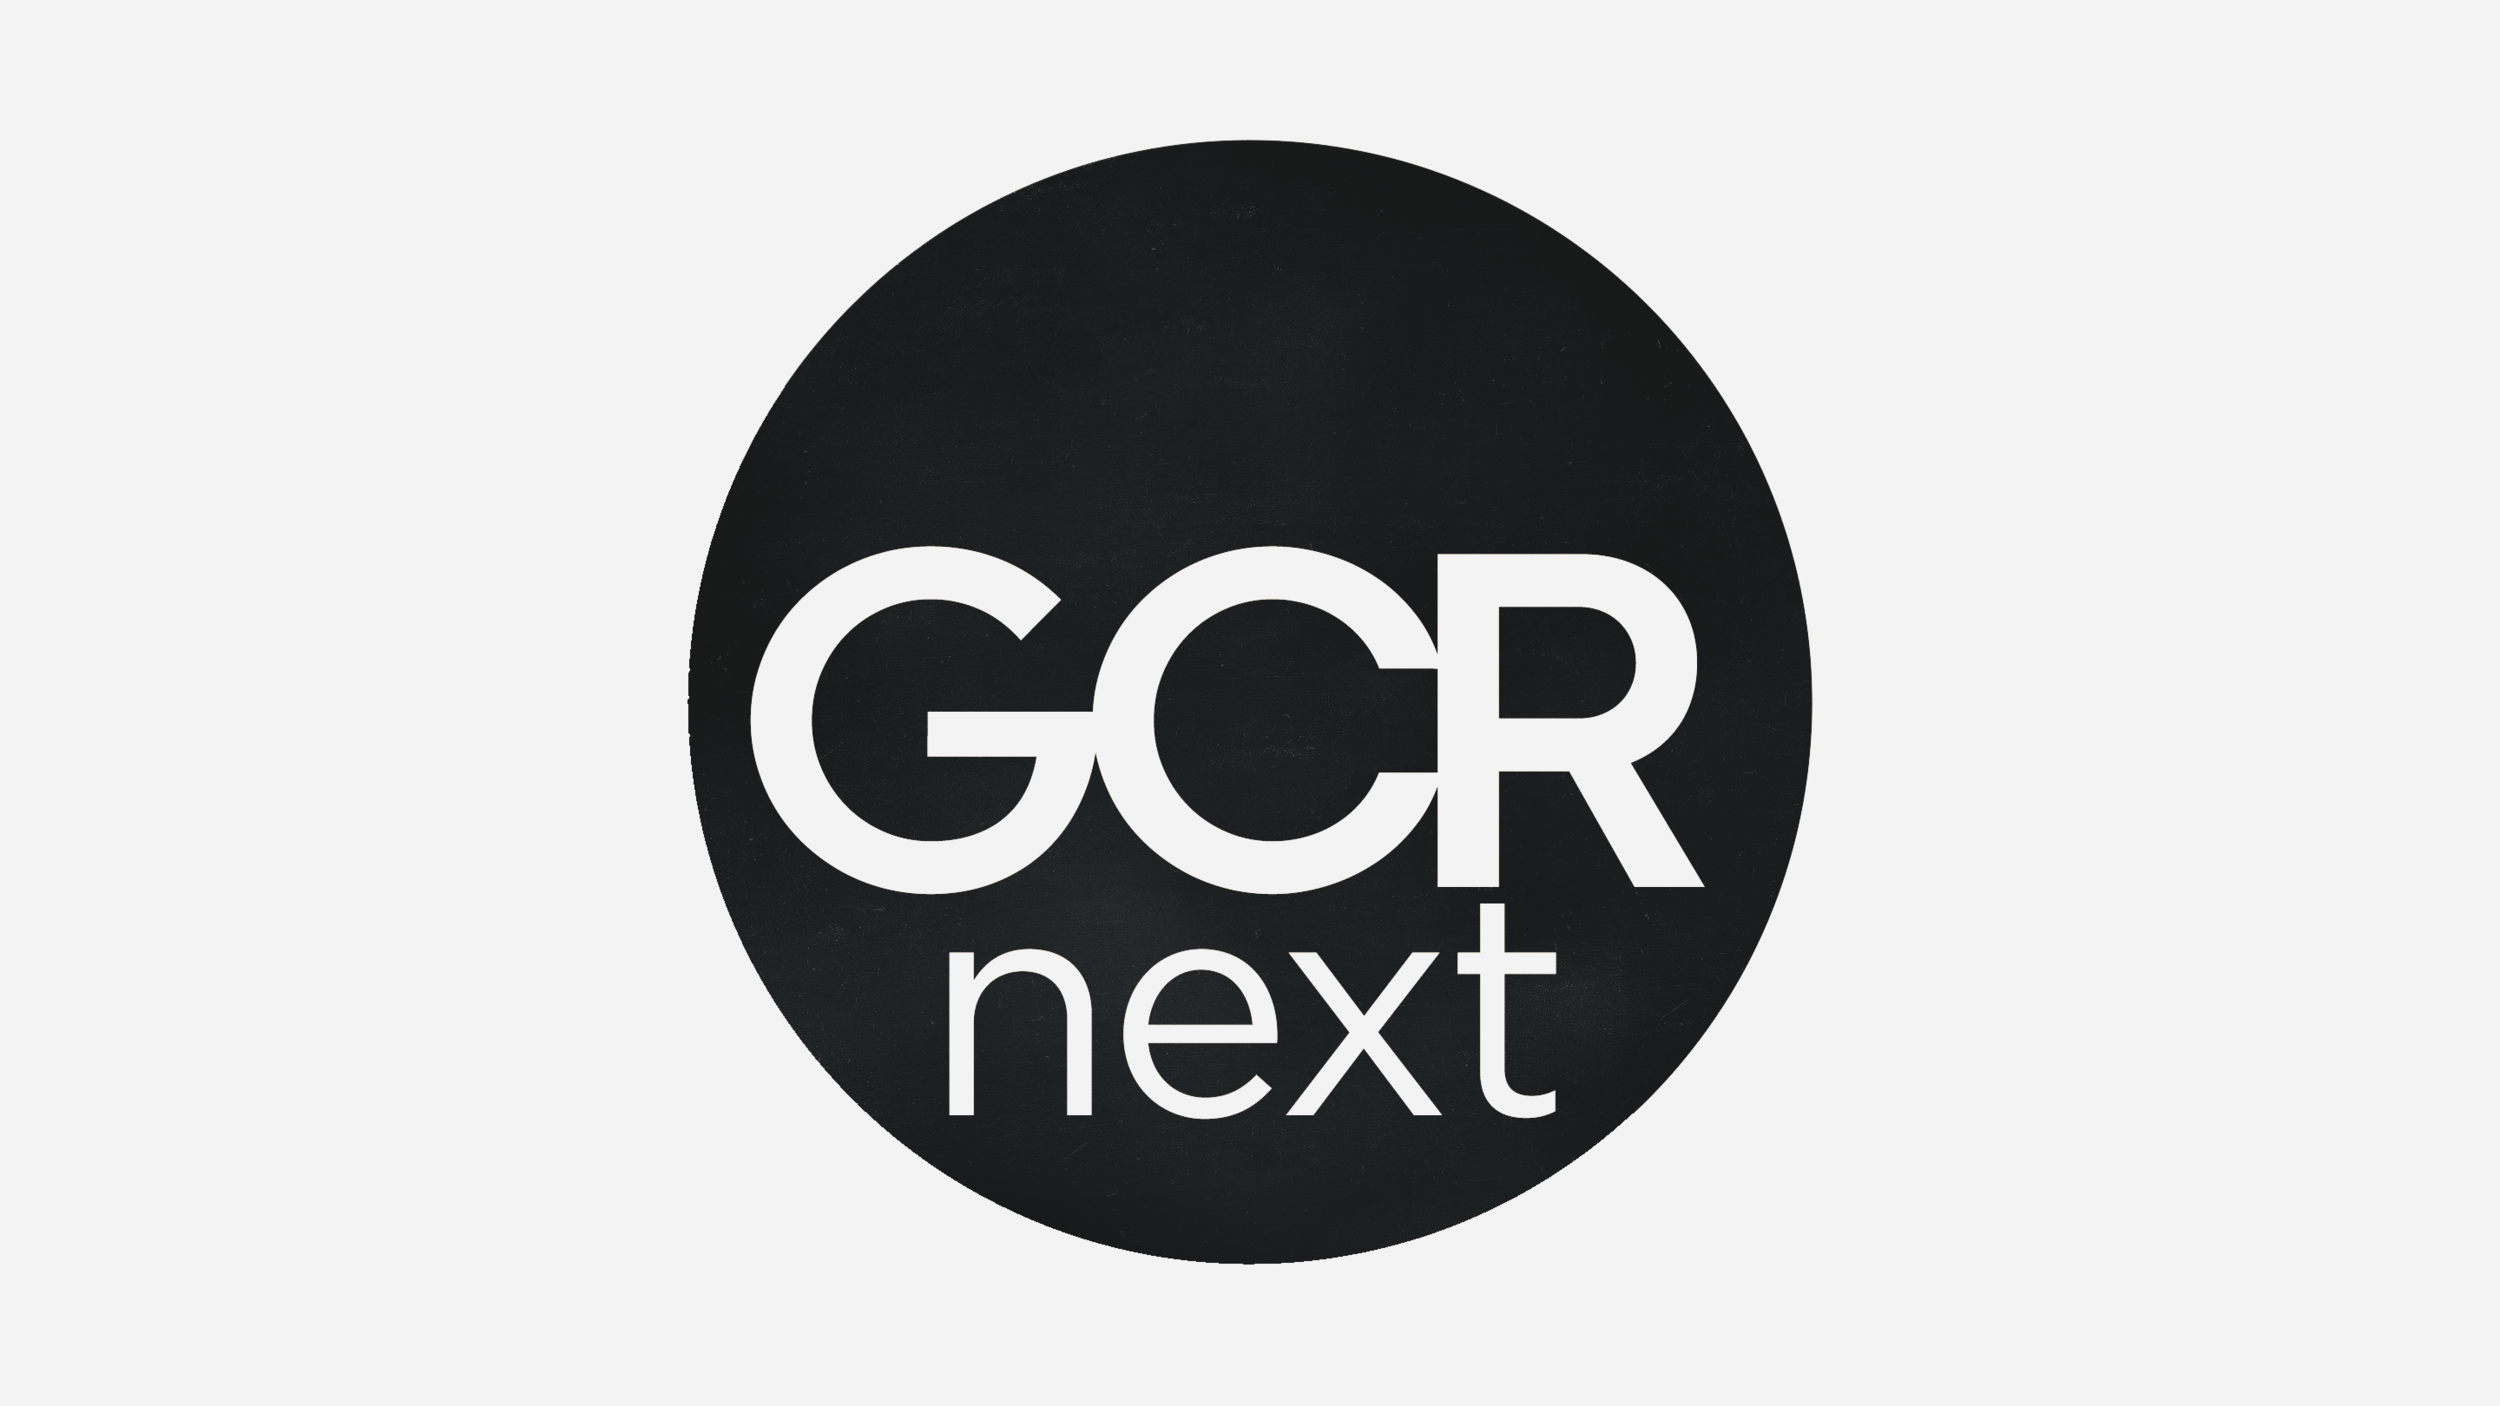 GCRnext.png